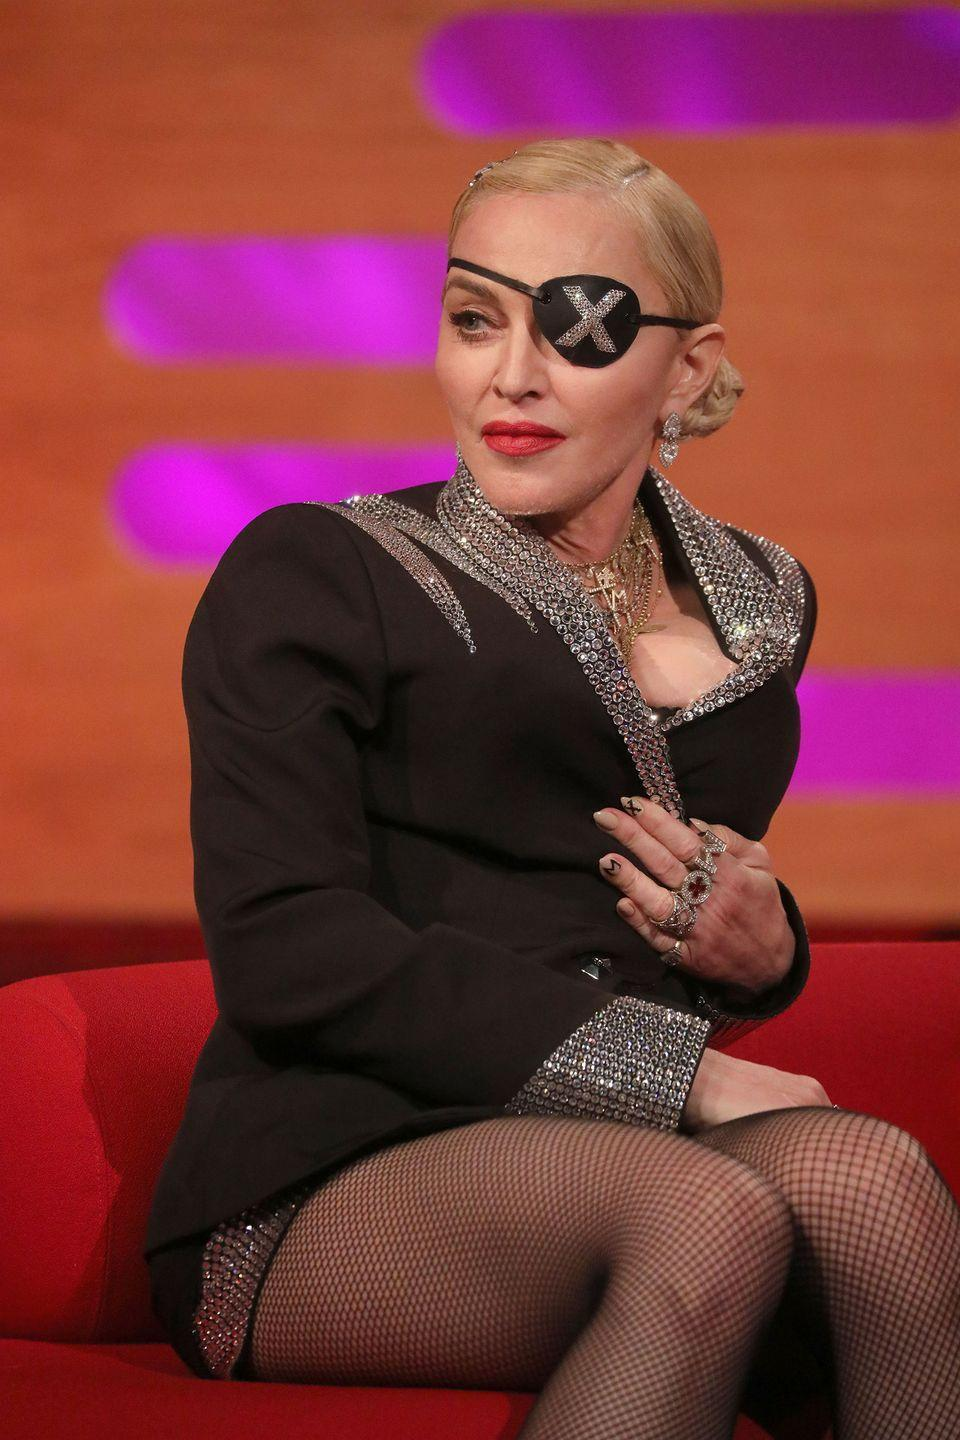 "<p><strong>Birthday: </strong>August 16</p><p><strong>Age Turning: </strong>62</p><p>At soon-to-be-62, Madonna is <a href=""https://www.oprahmag.com/entertainment/a29474383/madonna-daughter-lourdes-leon-look-alike-video/"" rel=""nofollow noopener"" target=""_blank"" data-ylk=""slk:basically twins with her 23-year-old daughter"" class=""link rapid-noclick-resp"">basically twins with her 23-year-old daughter</a> Lourdes Leon.<br></p>"